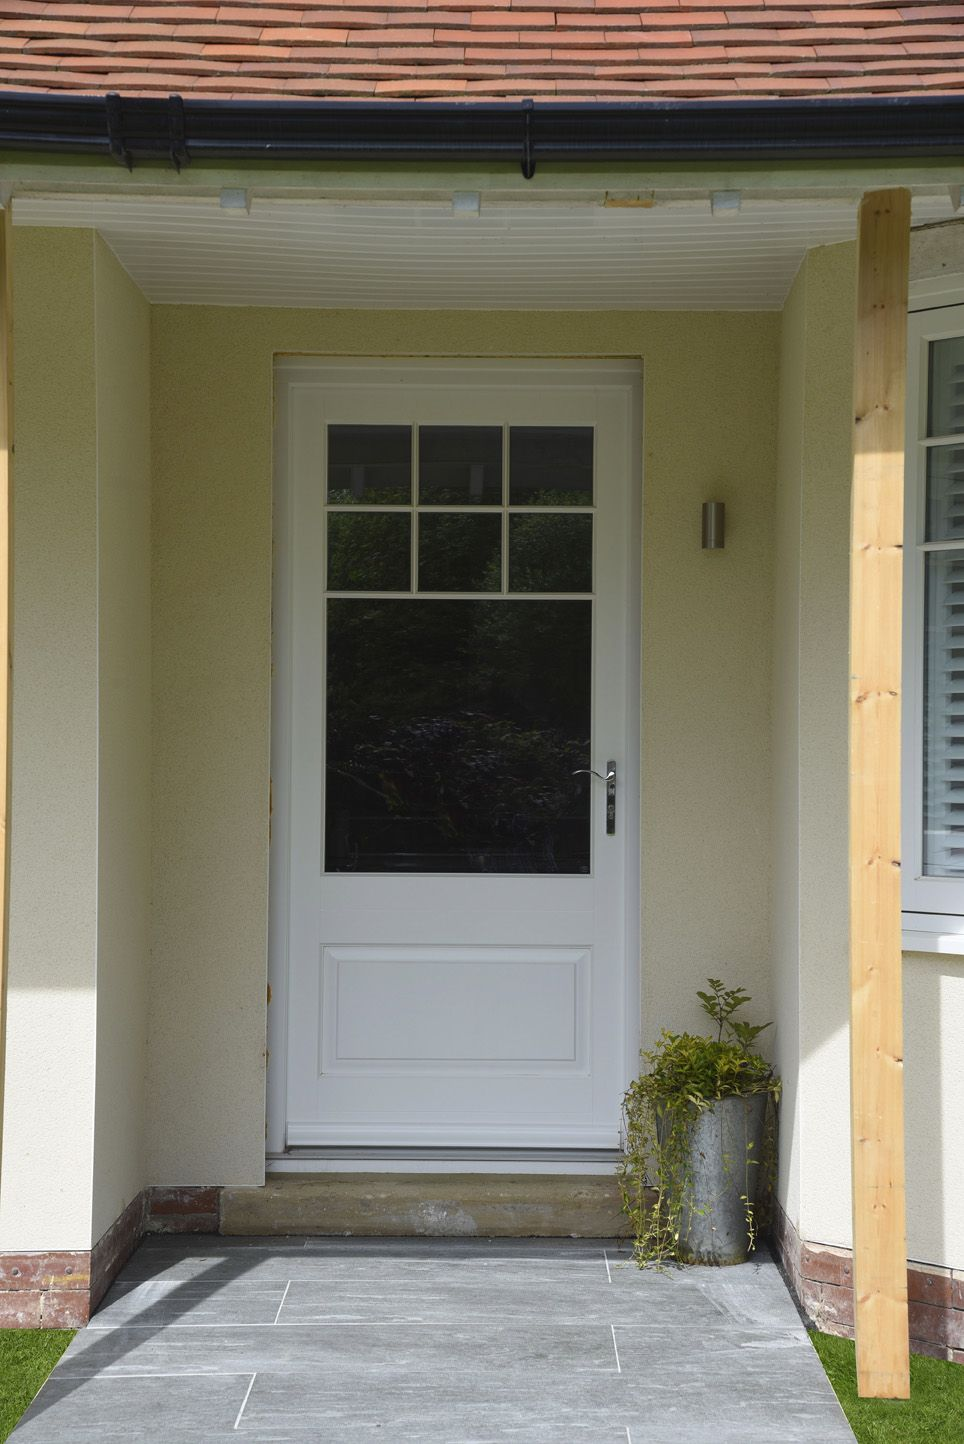 Bardwell Style Entrance Door Finished In White With T Bar Glazing